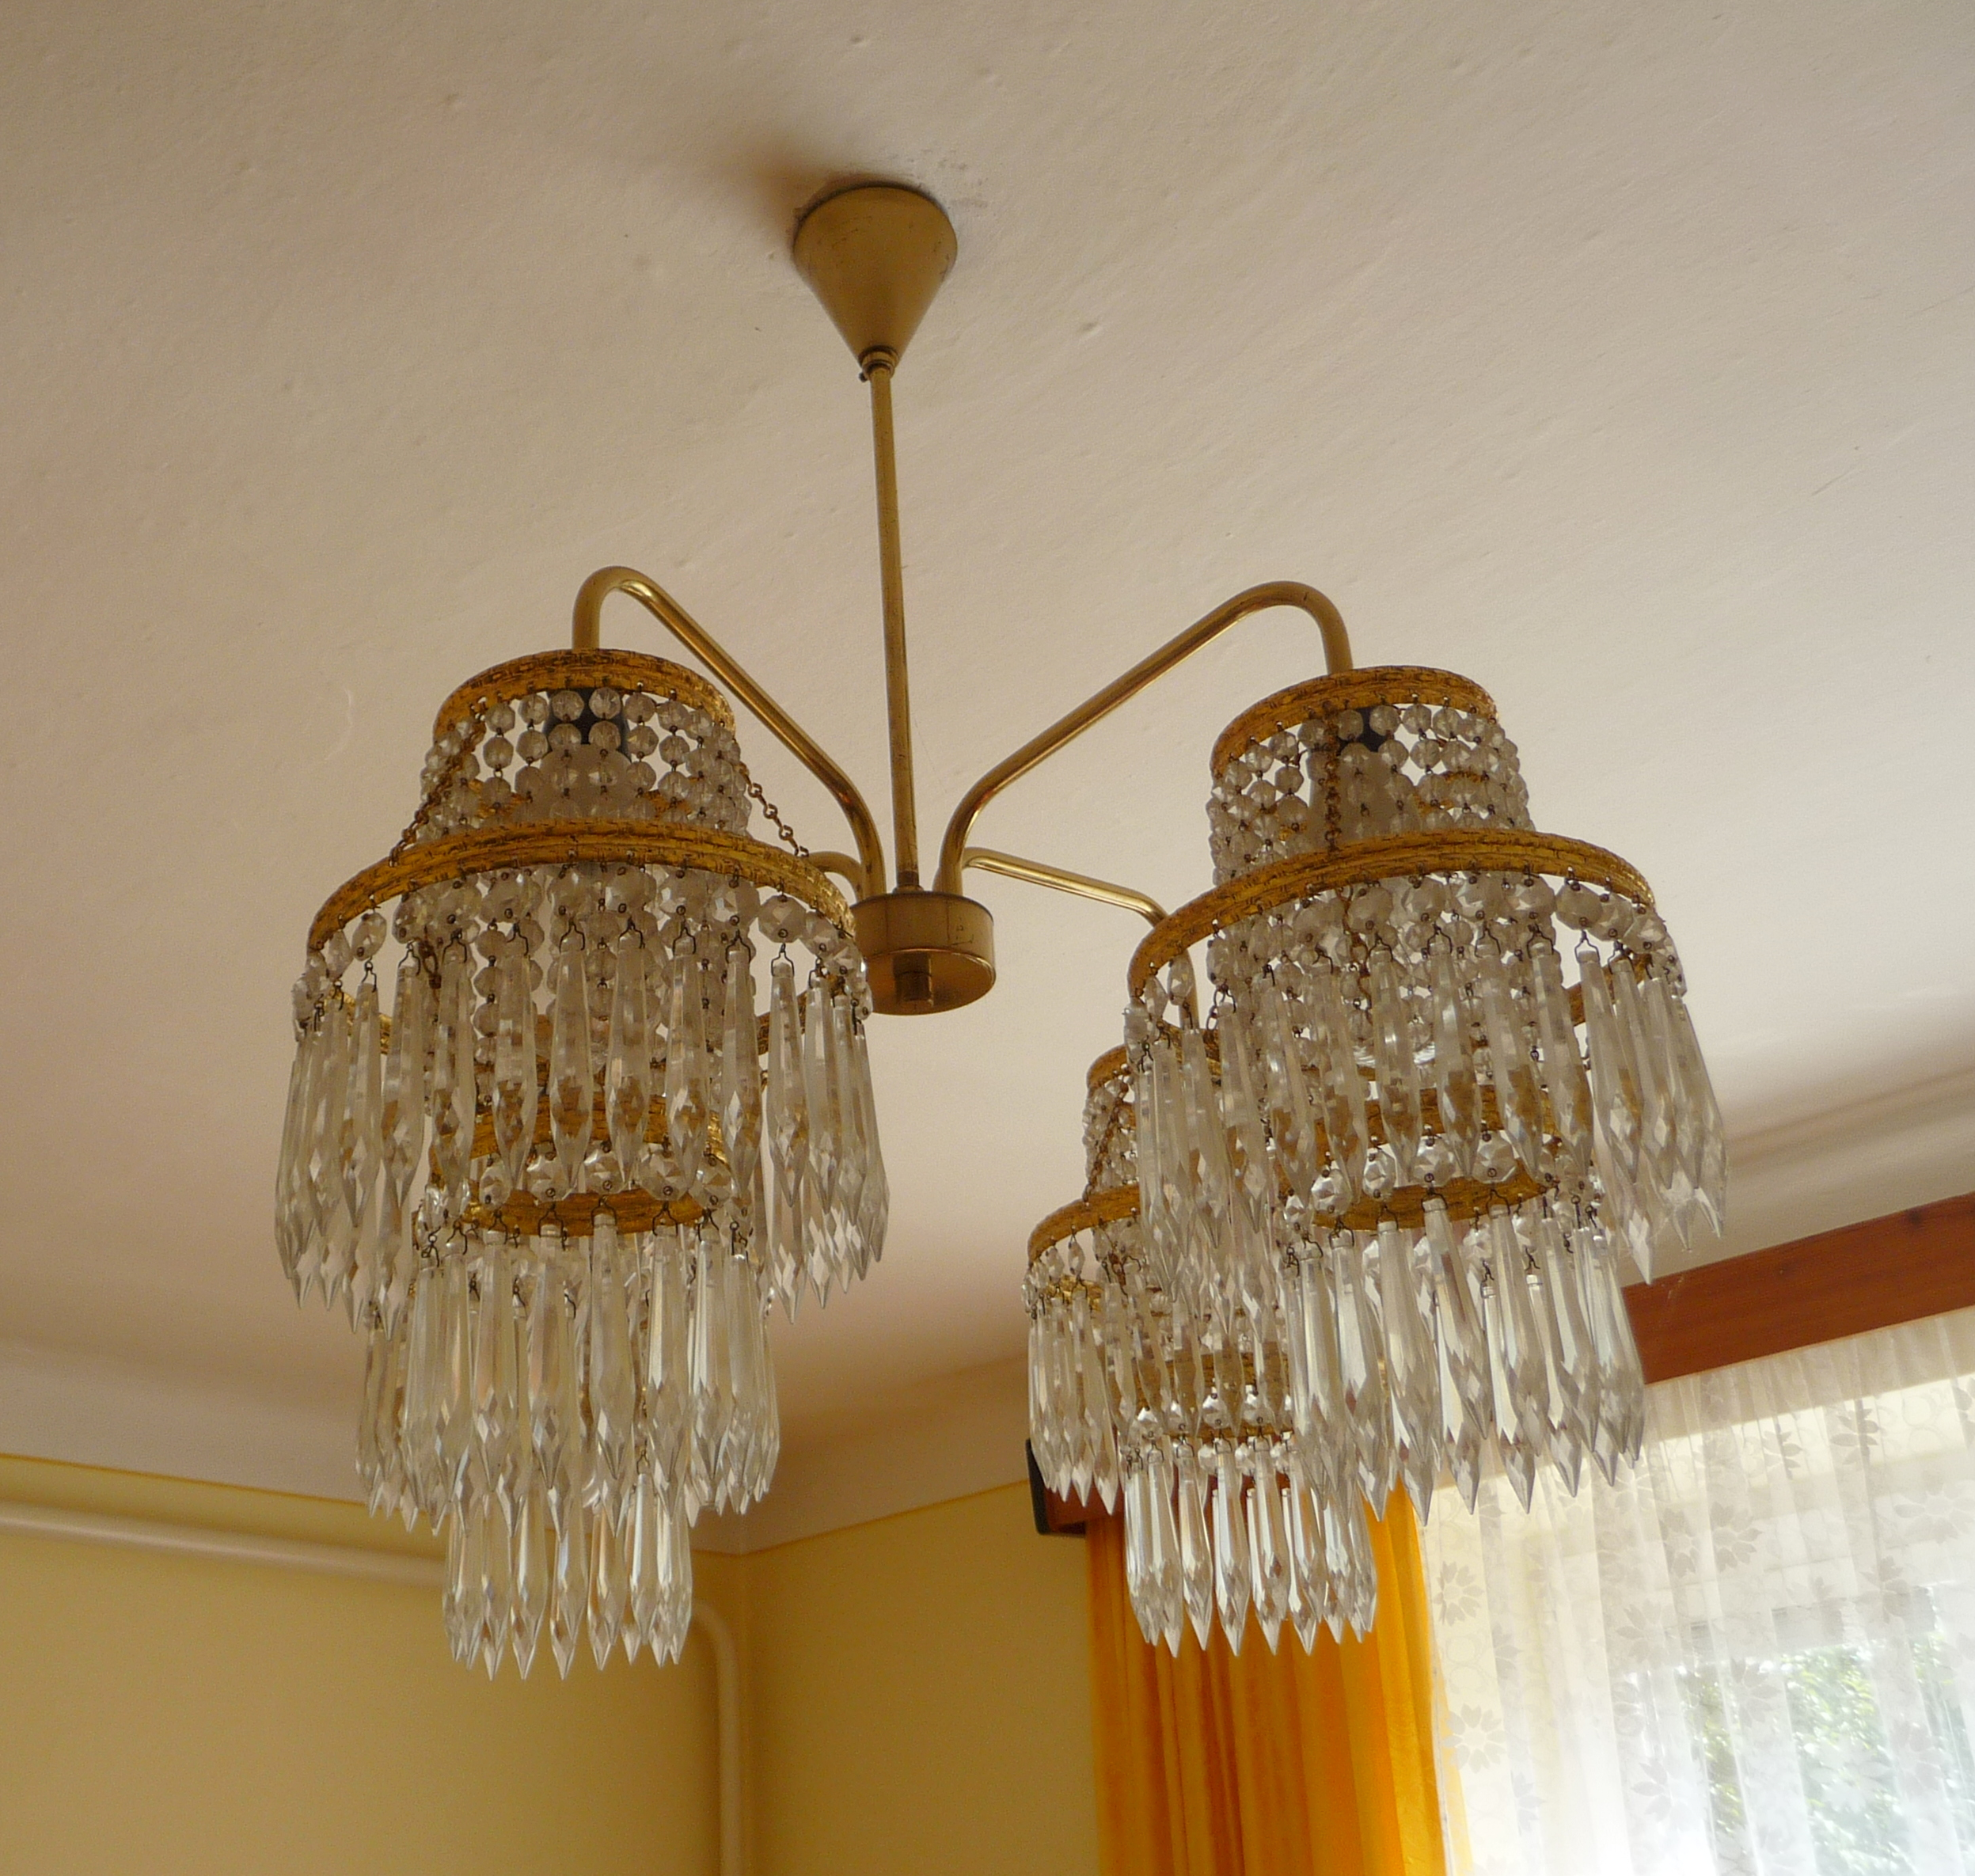 Stunning chandelier light meaning photos simple design home file glass chandelier jpg wikimedia commons arubaitofo Choice Image